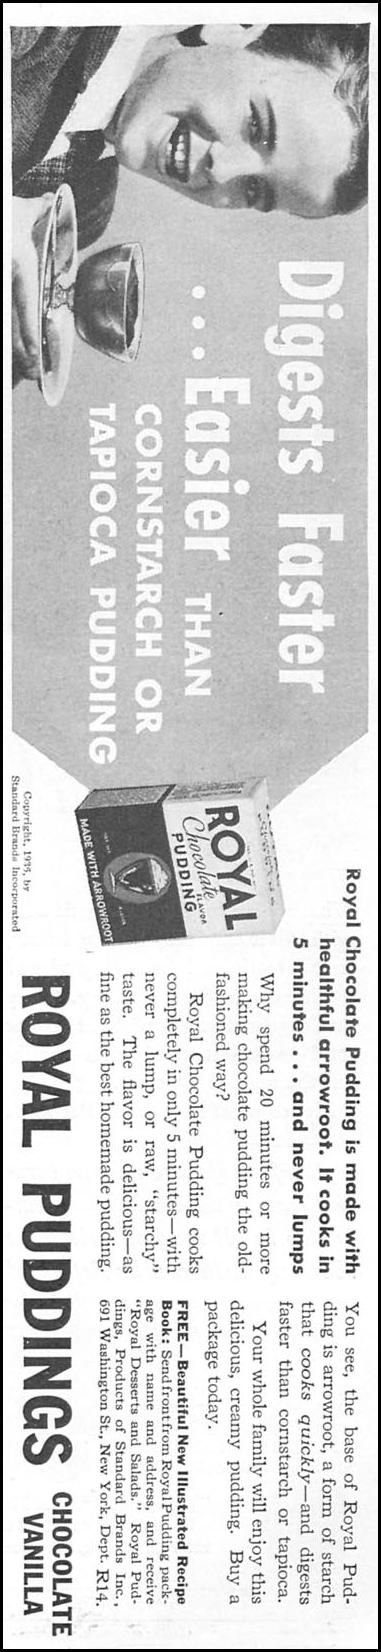 ROYAL PUDDING GOOD HOUSEKEEPING 04/01/1936 p. 161